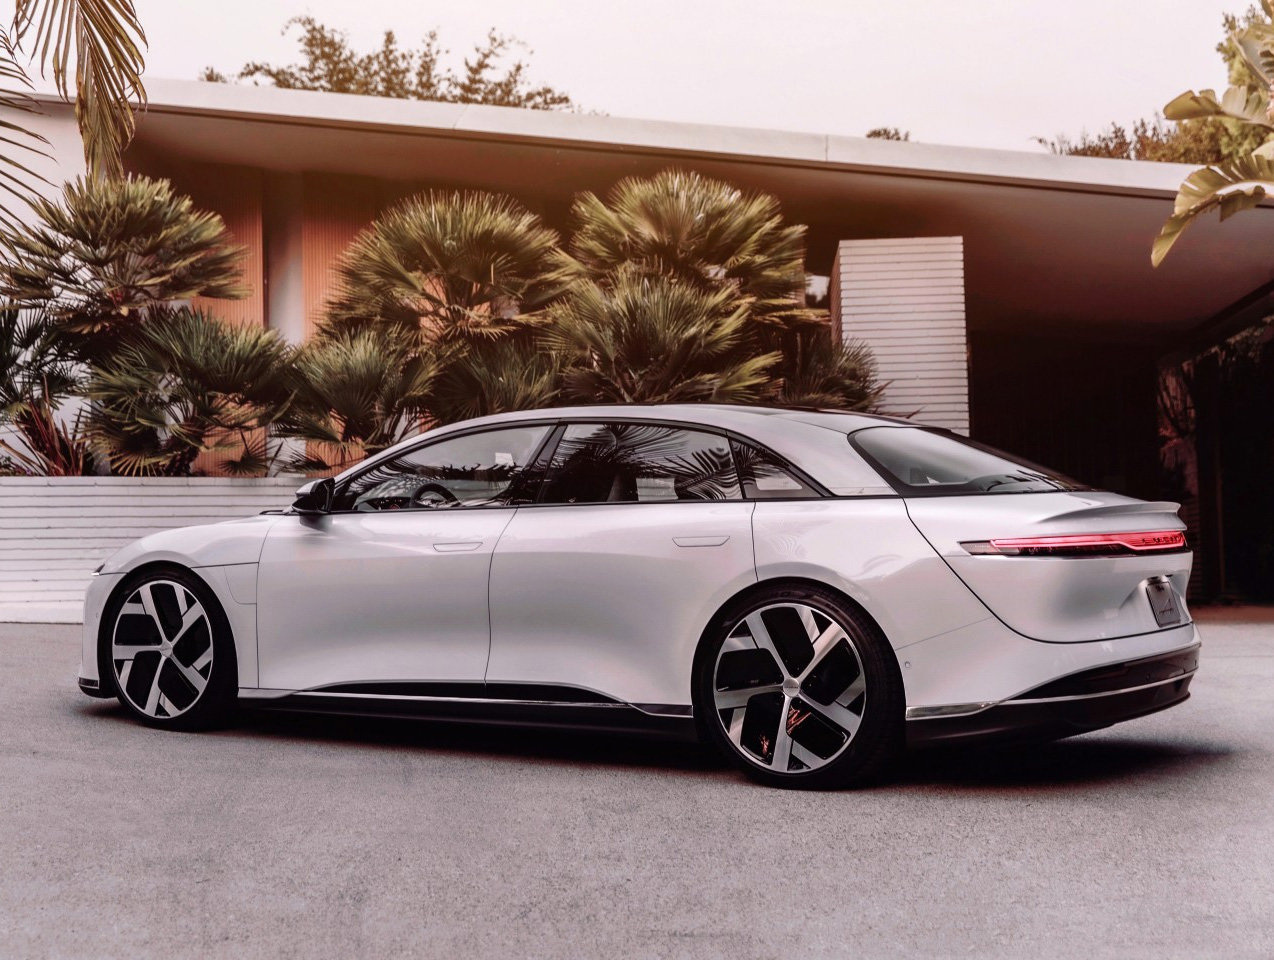 Lucid Launches 1080-Horsepower Luxury EV with Crazy Range at werd.com